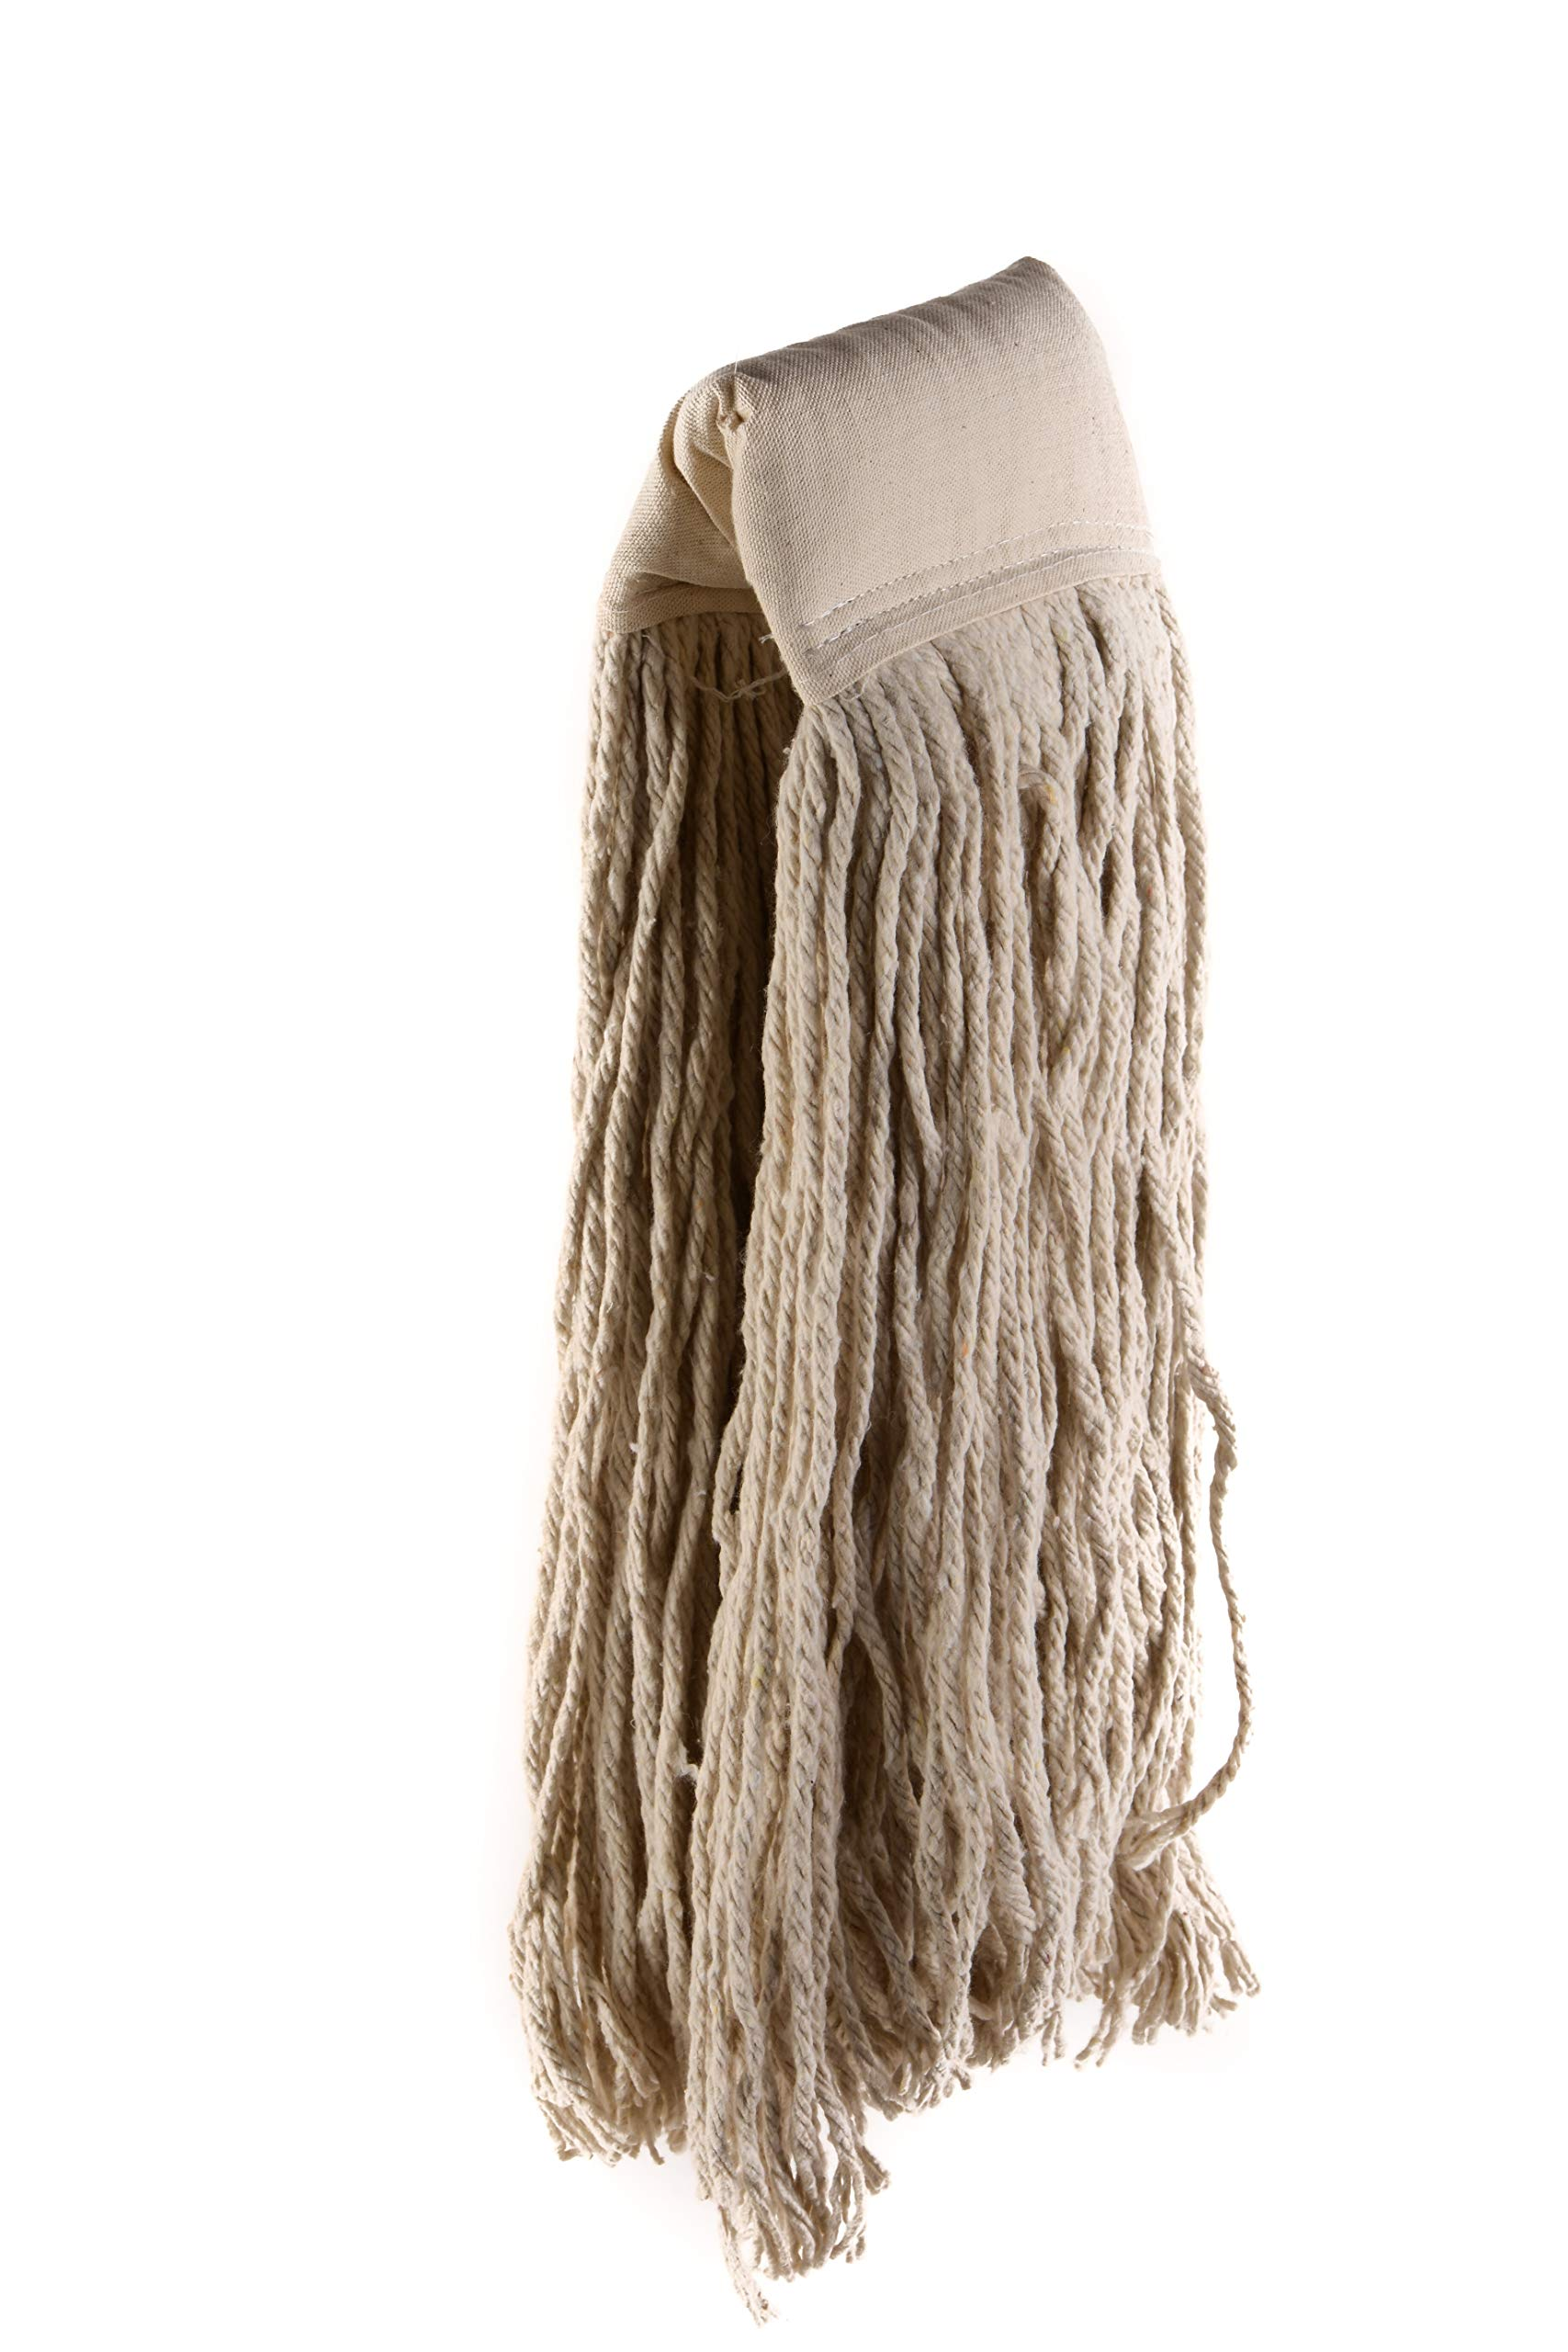 [48 PACK] EcoQuality Commercial Mop Head #32, 32oz Mop Head Blended Yarn - X-Large For Commercial And Industrial Use | Cotton Mop Head Replacement | 32 Ounce (White)